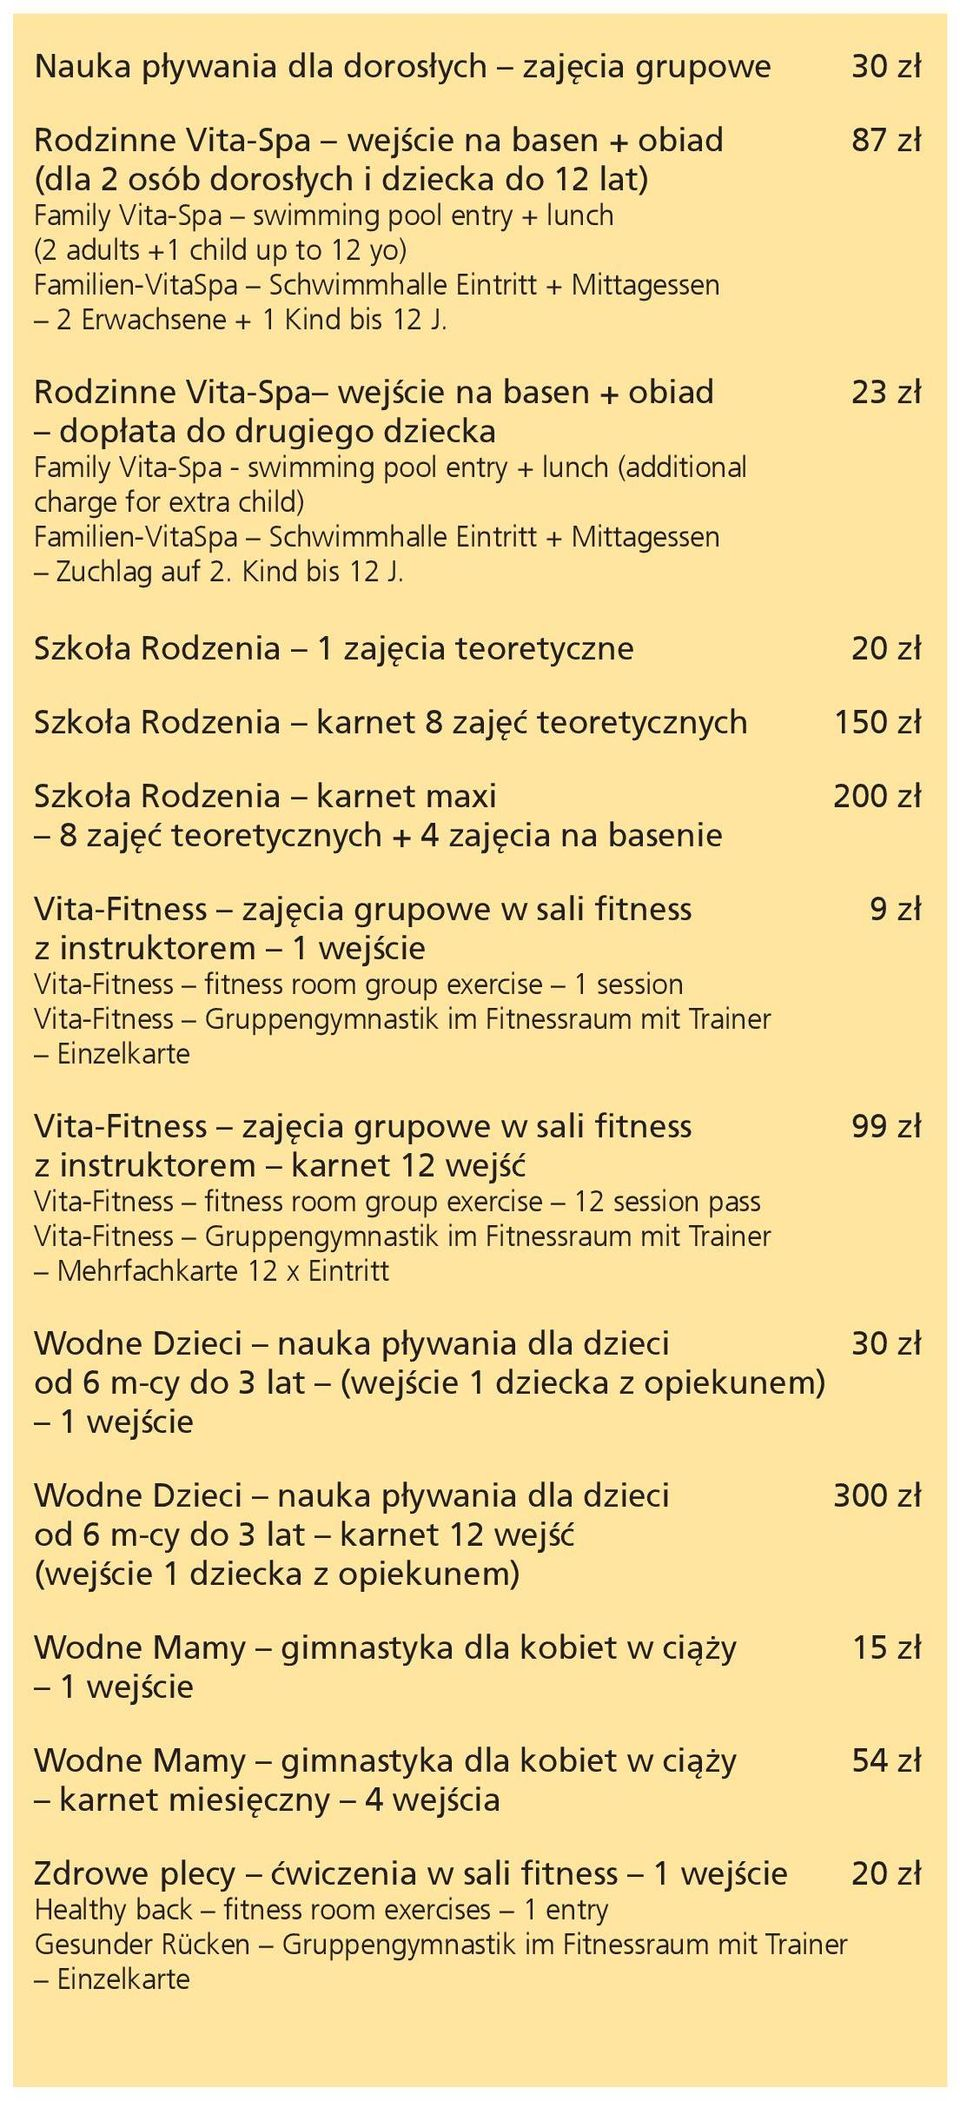 Rodzinne Vita-Spa wejście na basen + obiad dopłata do drugiego dziecka Family Vita-Spa - swimming pool entry + lunch (additional charge for extra child) Familien-VitaSpa Schwimmhalle Eintritt +